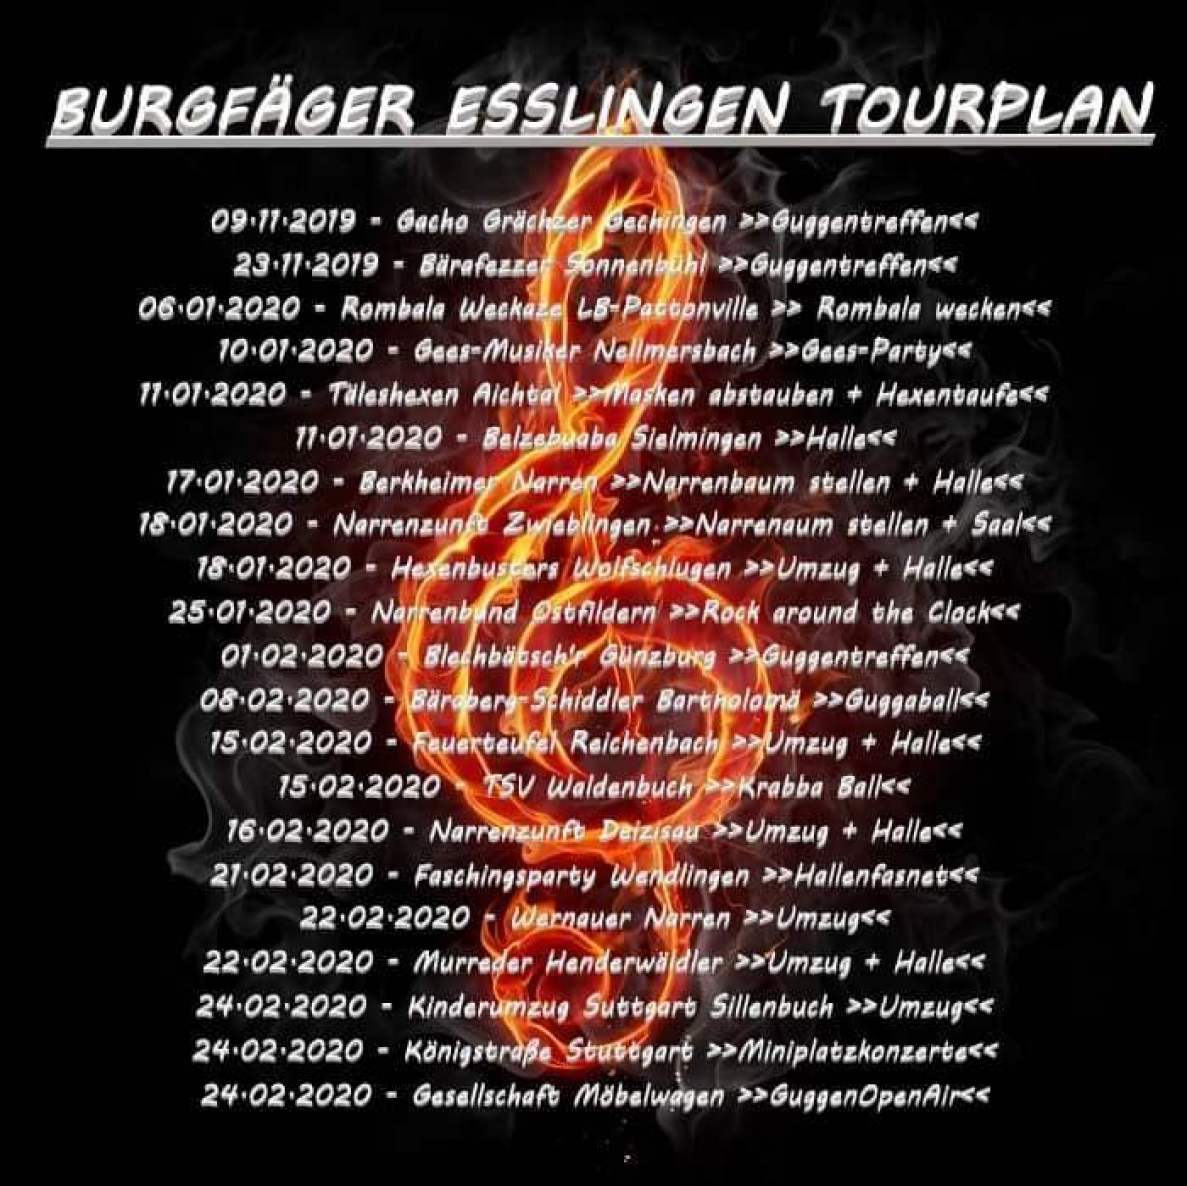 gallery/tourplan